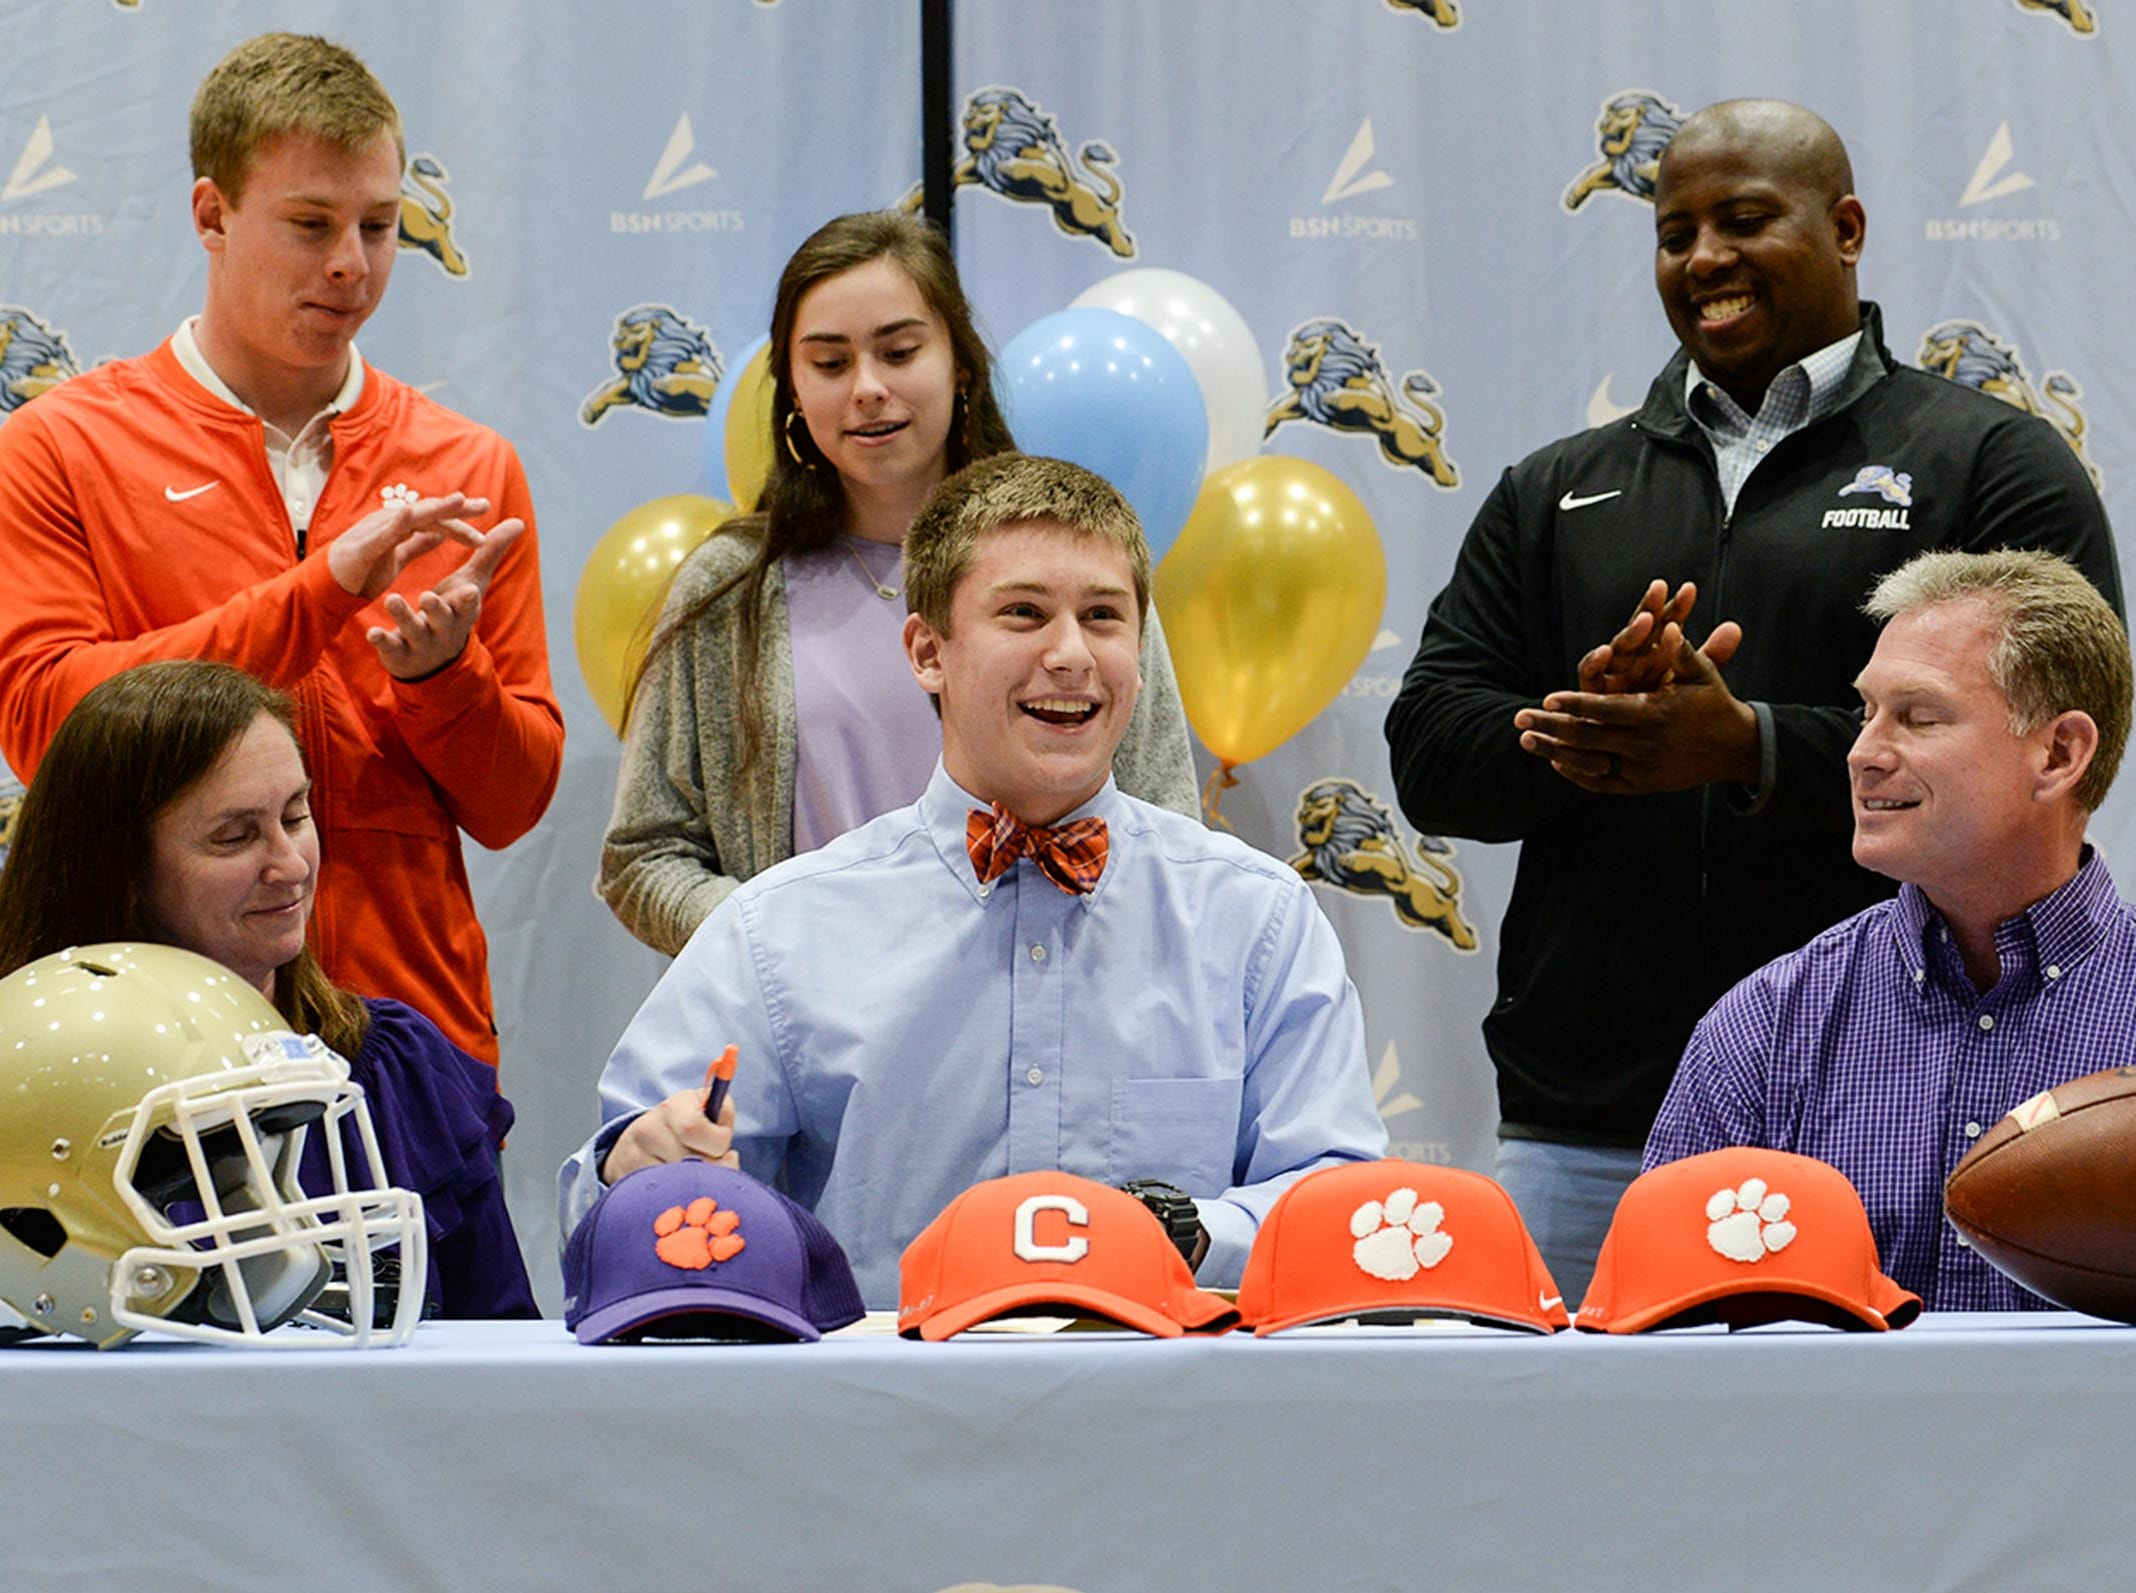 Clemson University football preferred walk on signee Matthew Maloney with parents Phillip and Tina, brother Jacob, sister Jessica, and D.W. Daniel football coach Jeff Fruster, right, during National Letter of Intent signing day at D.W. Daniel High School in Central Wednesday.